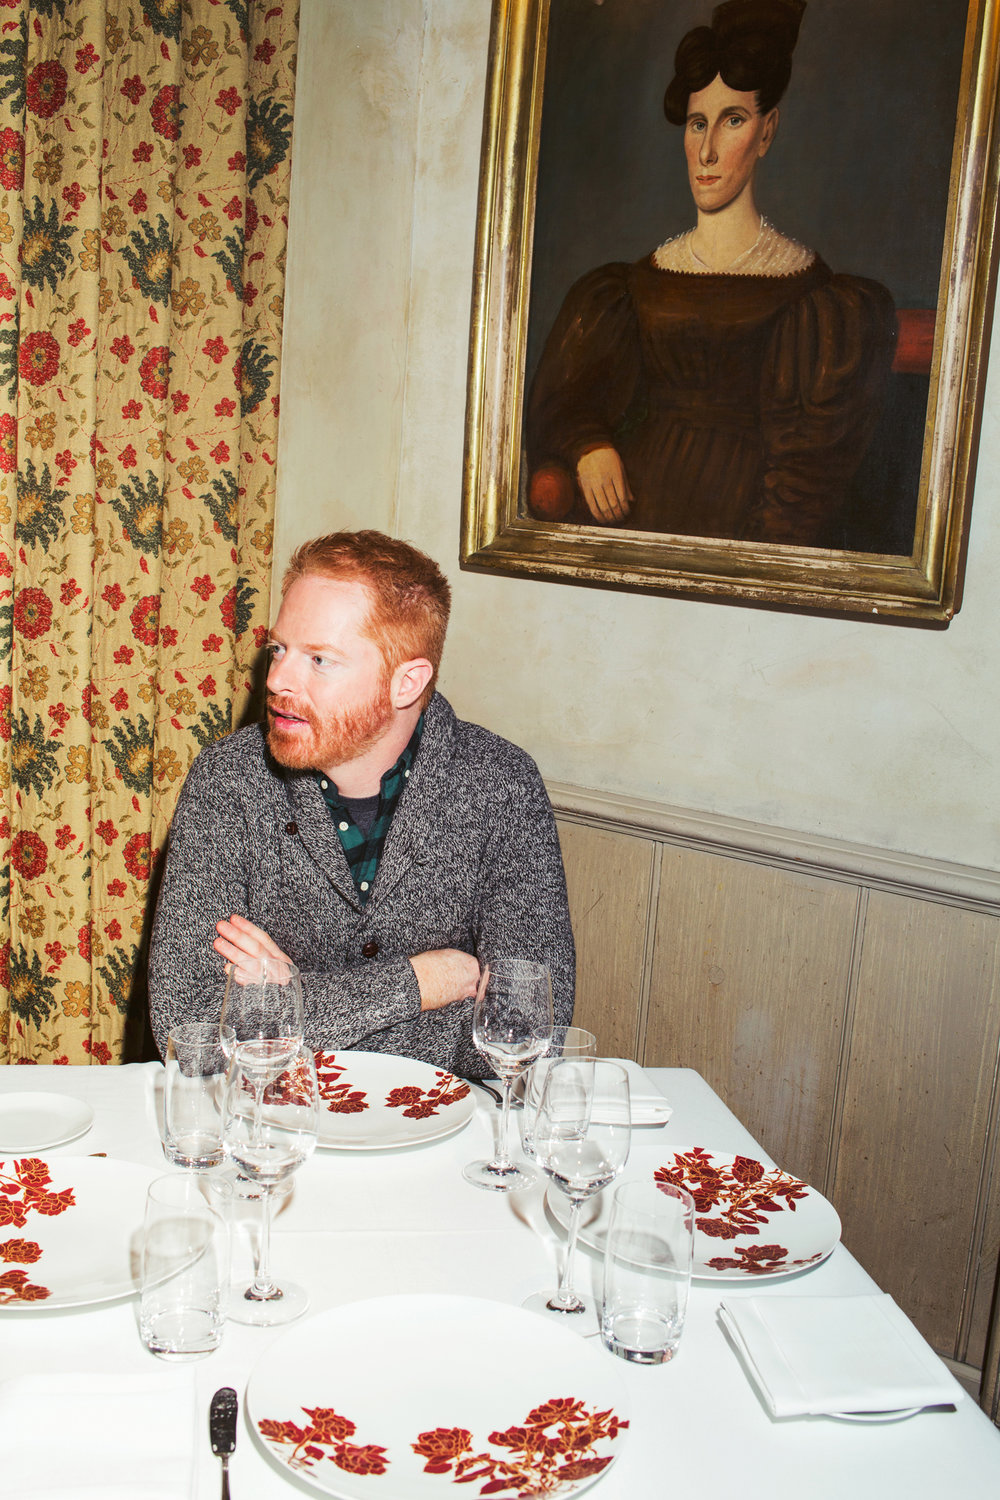 KATE OWEN | JESSE TYLER FERGUSON // THE NEW YORK TIMES